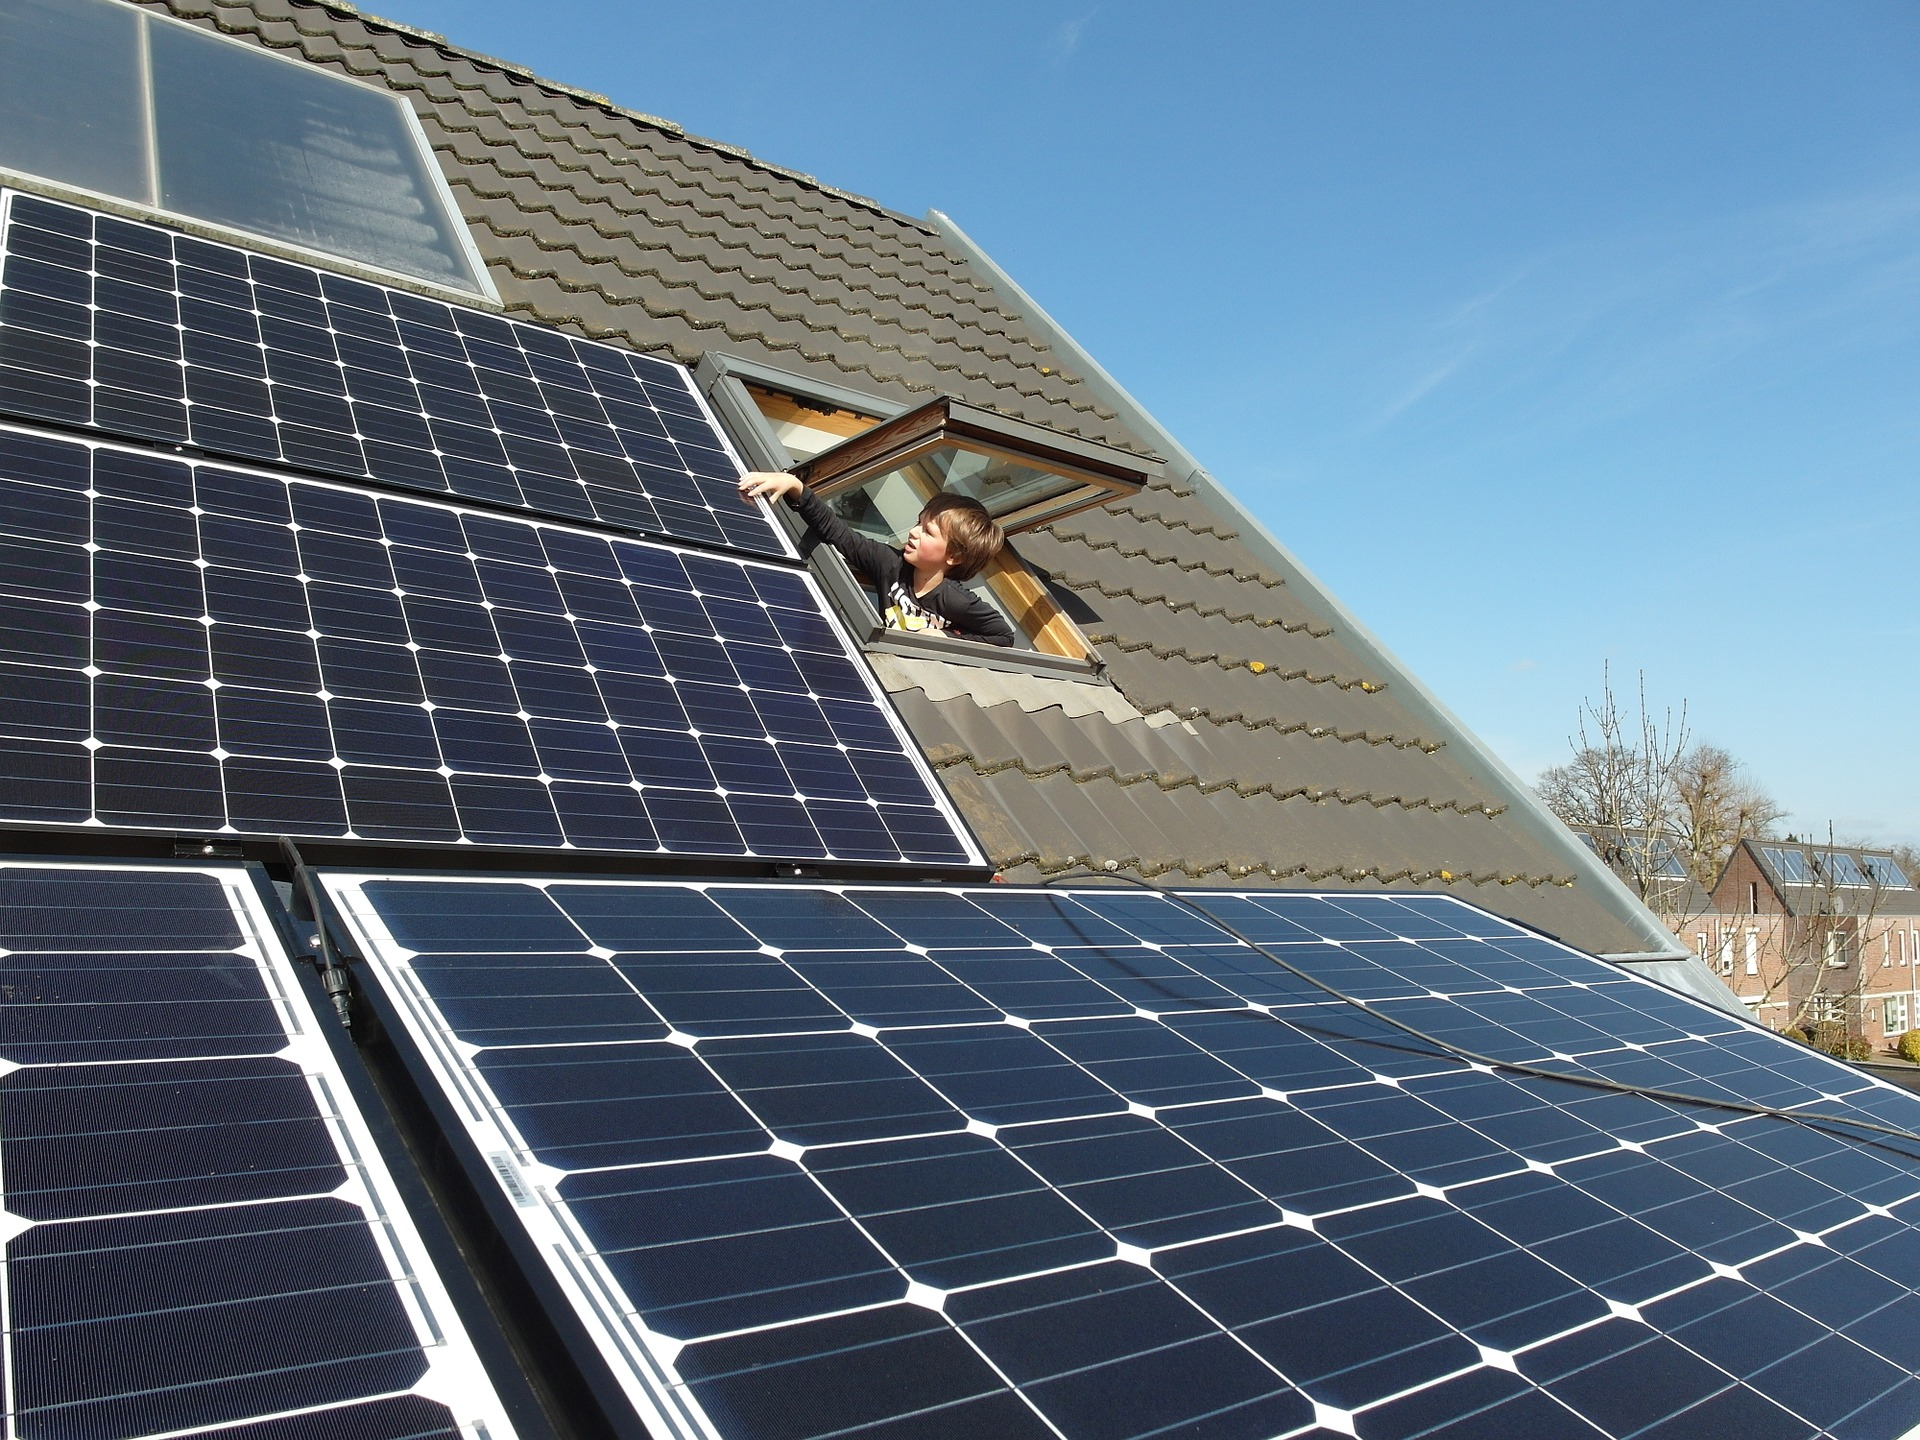 Here are 10 U.S. cities where solar energy could take off